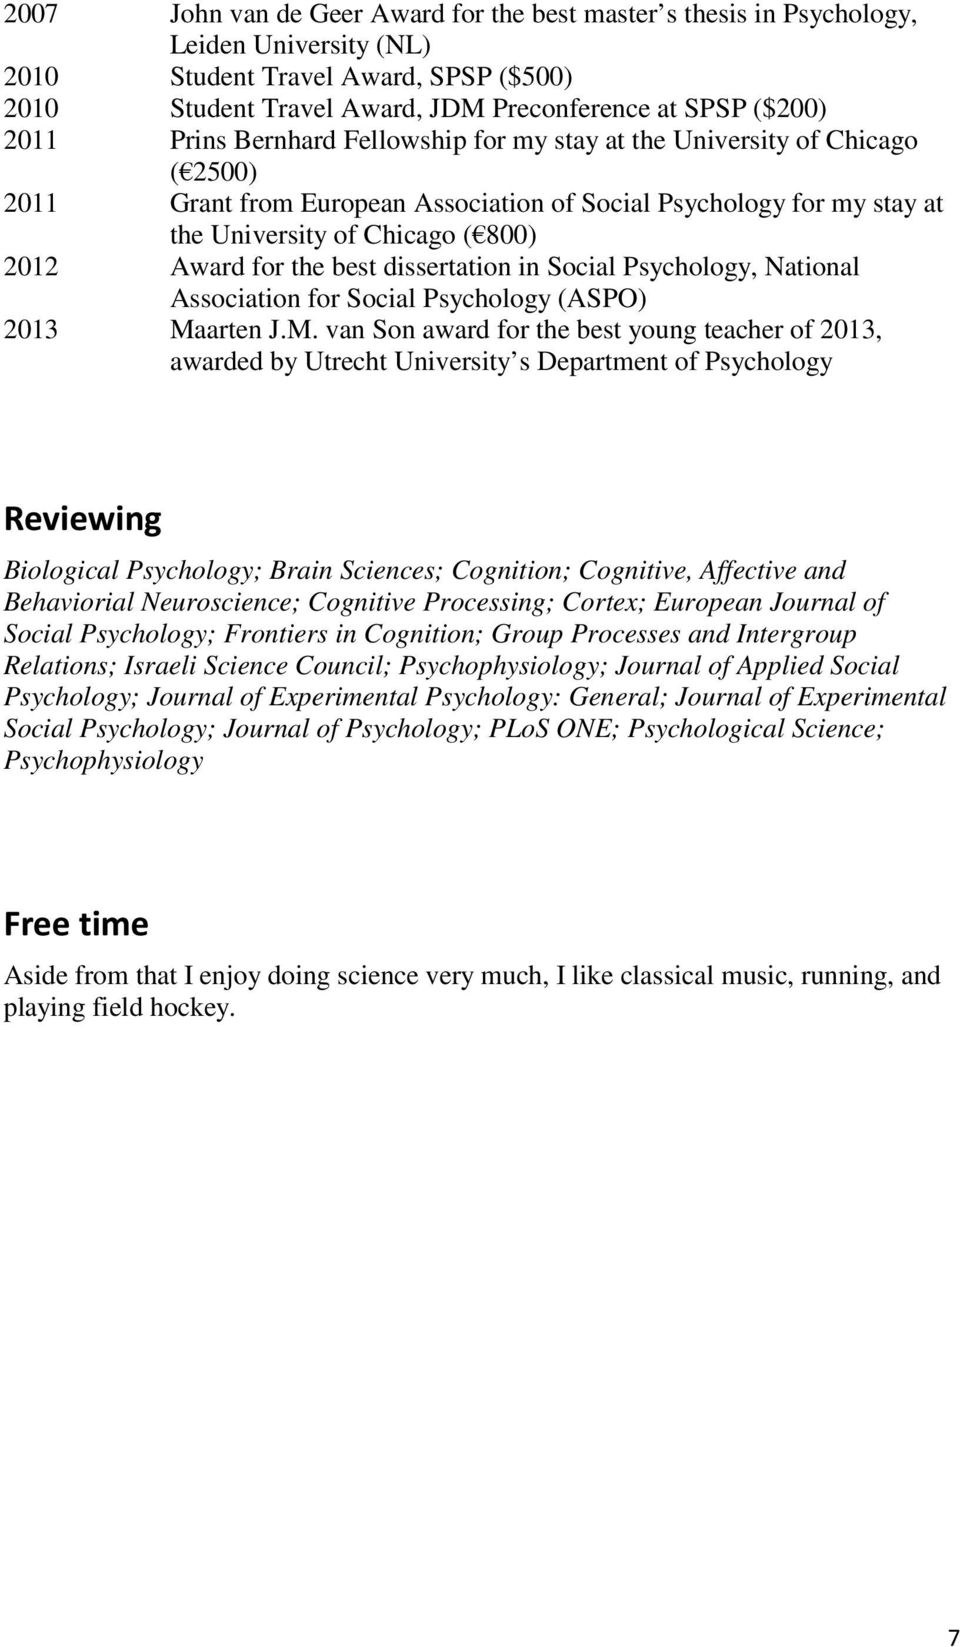 dissertation in Social Psychology, National Association for Social Psychology (ASPO) 2013 Ma